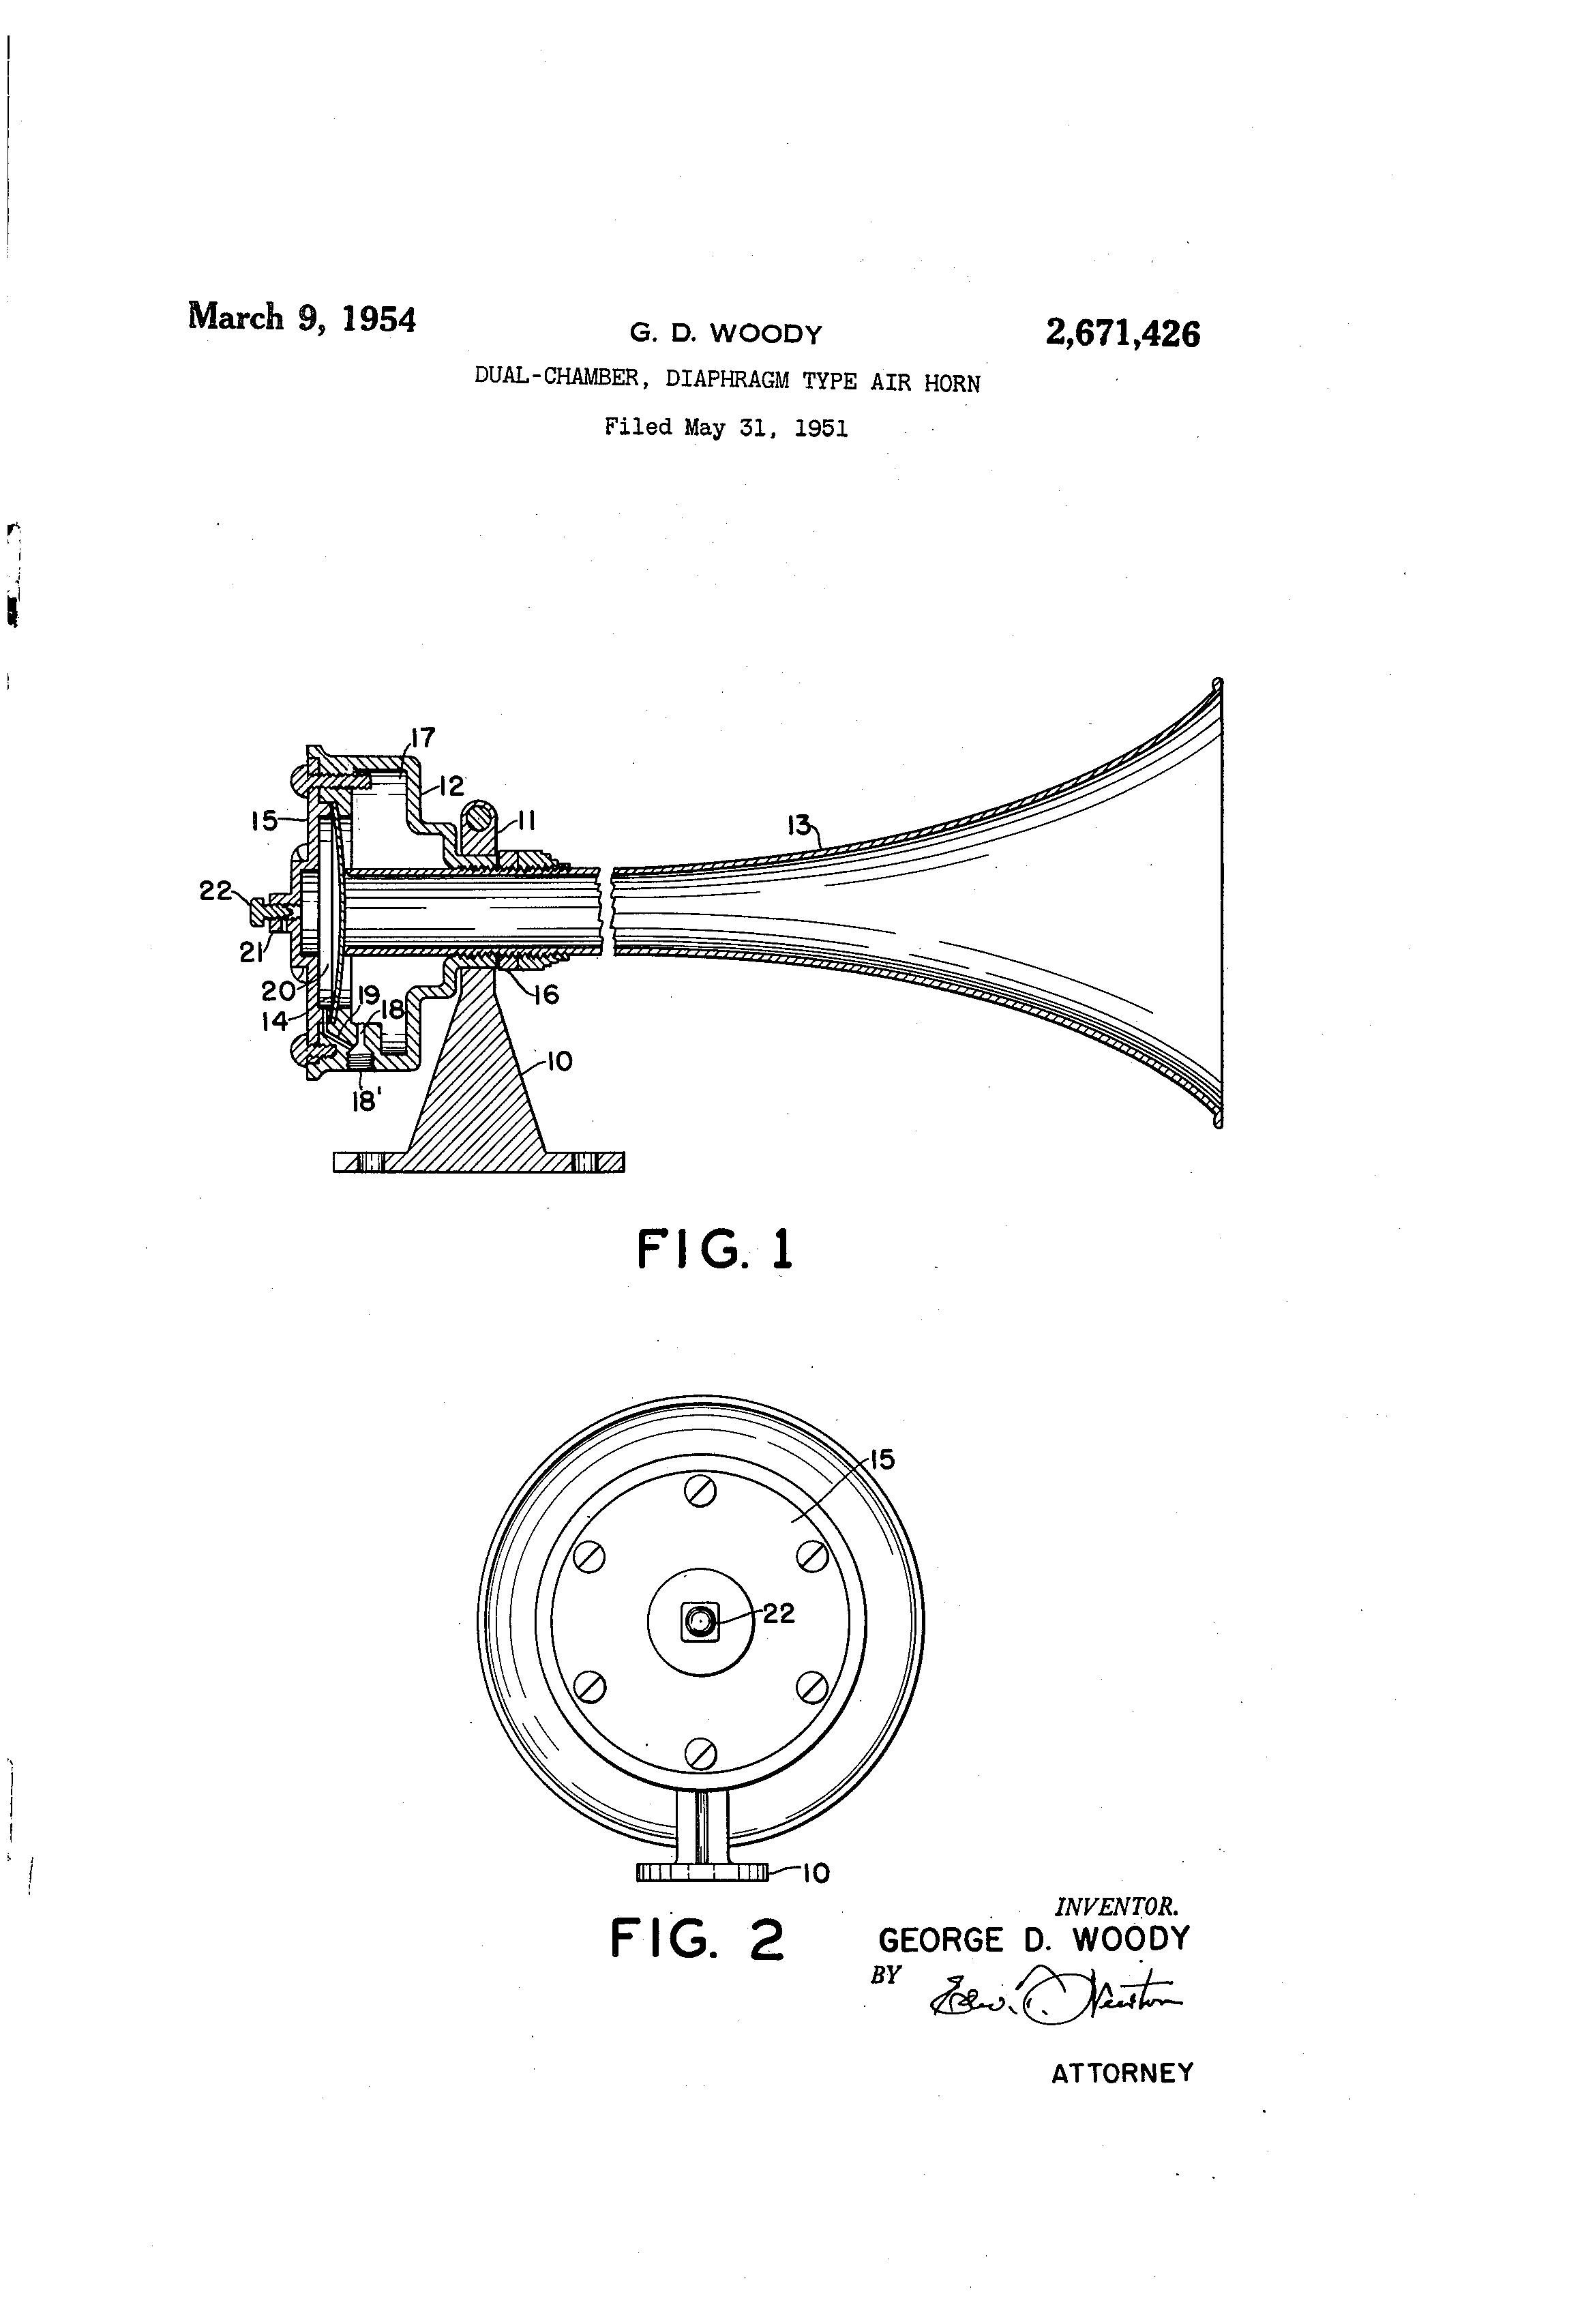 air horn diaphragm electronic air horn schematic patent us2671426 - dual-chamber, diaphragm type air horn ...